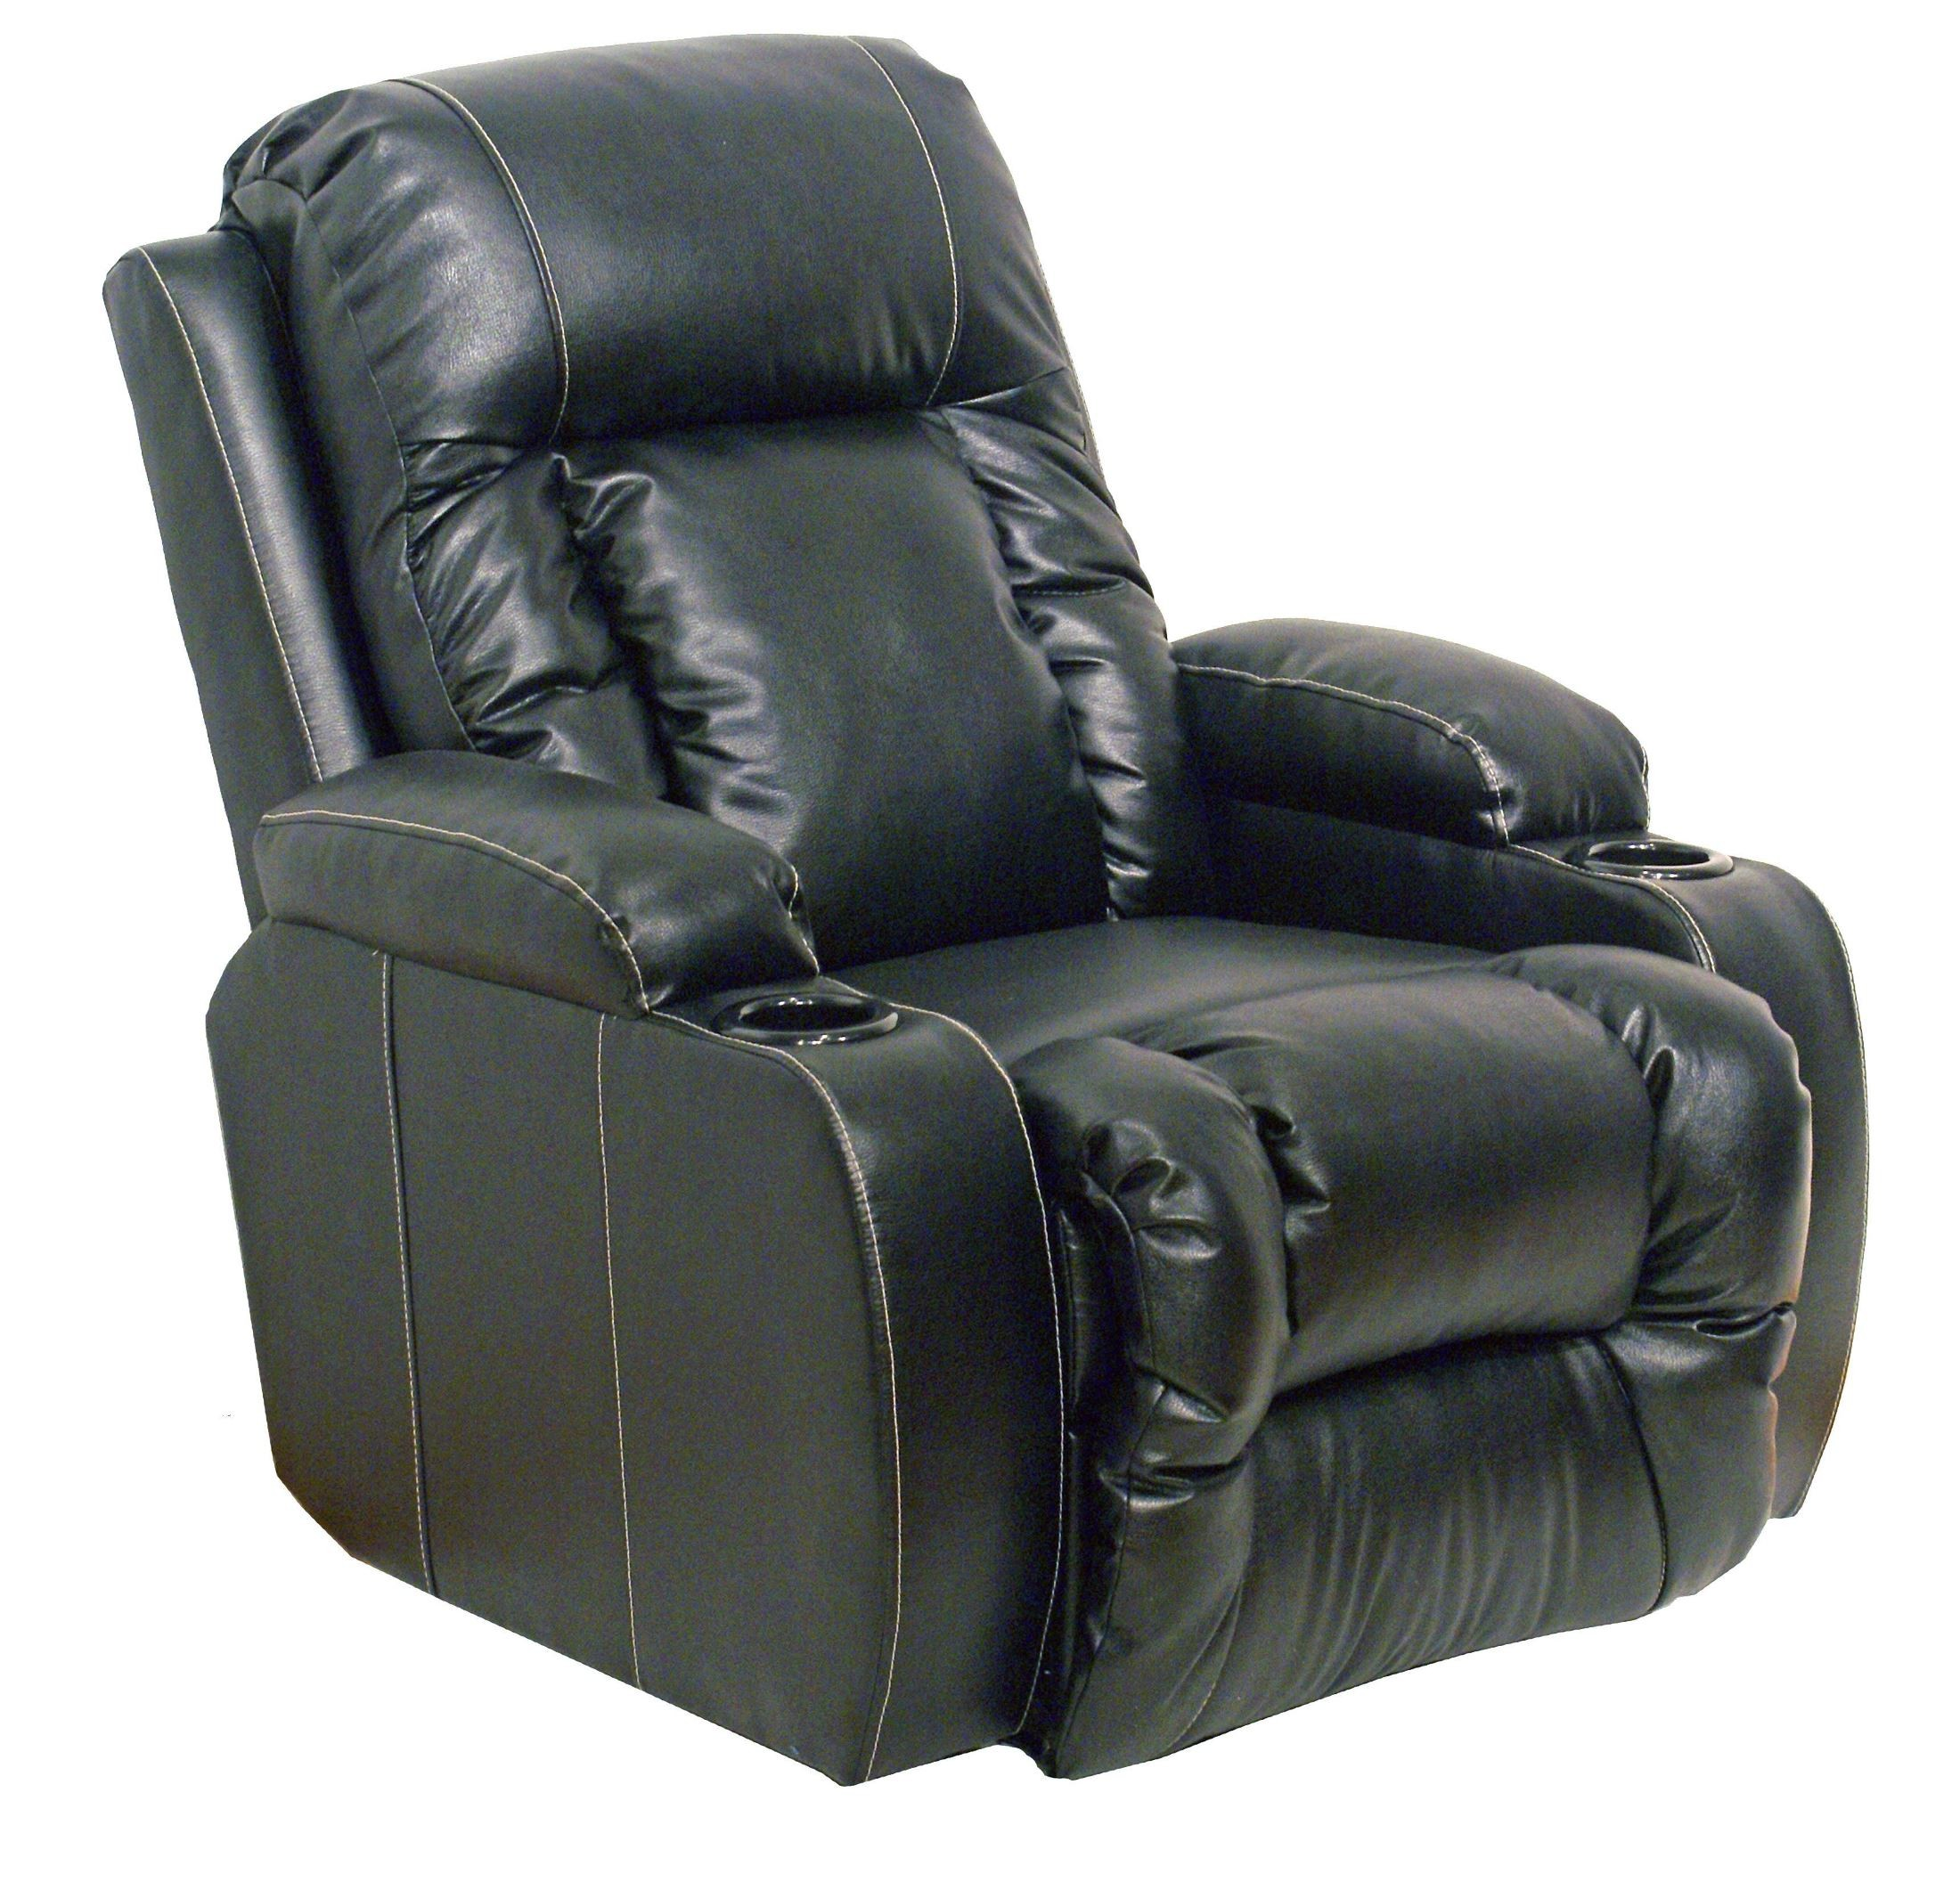 Top gun black leather inch away recliner from catnapper for Catnapper cloud nine chaise recliner